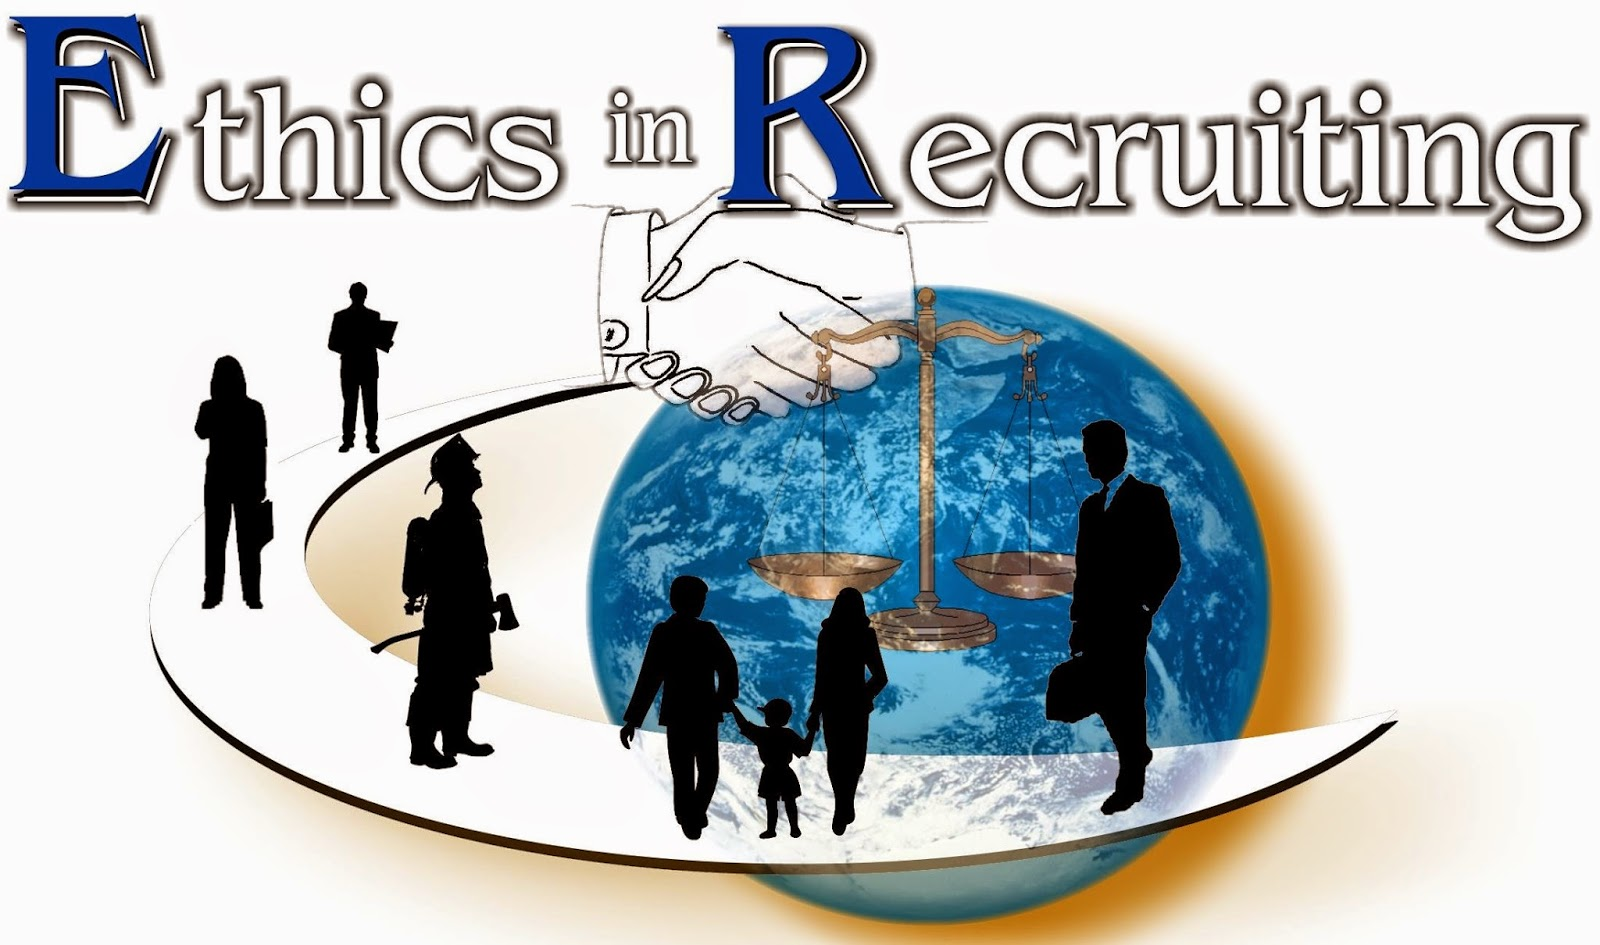 Ethics in Recruiting on LinkedIn